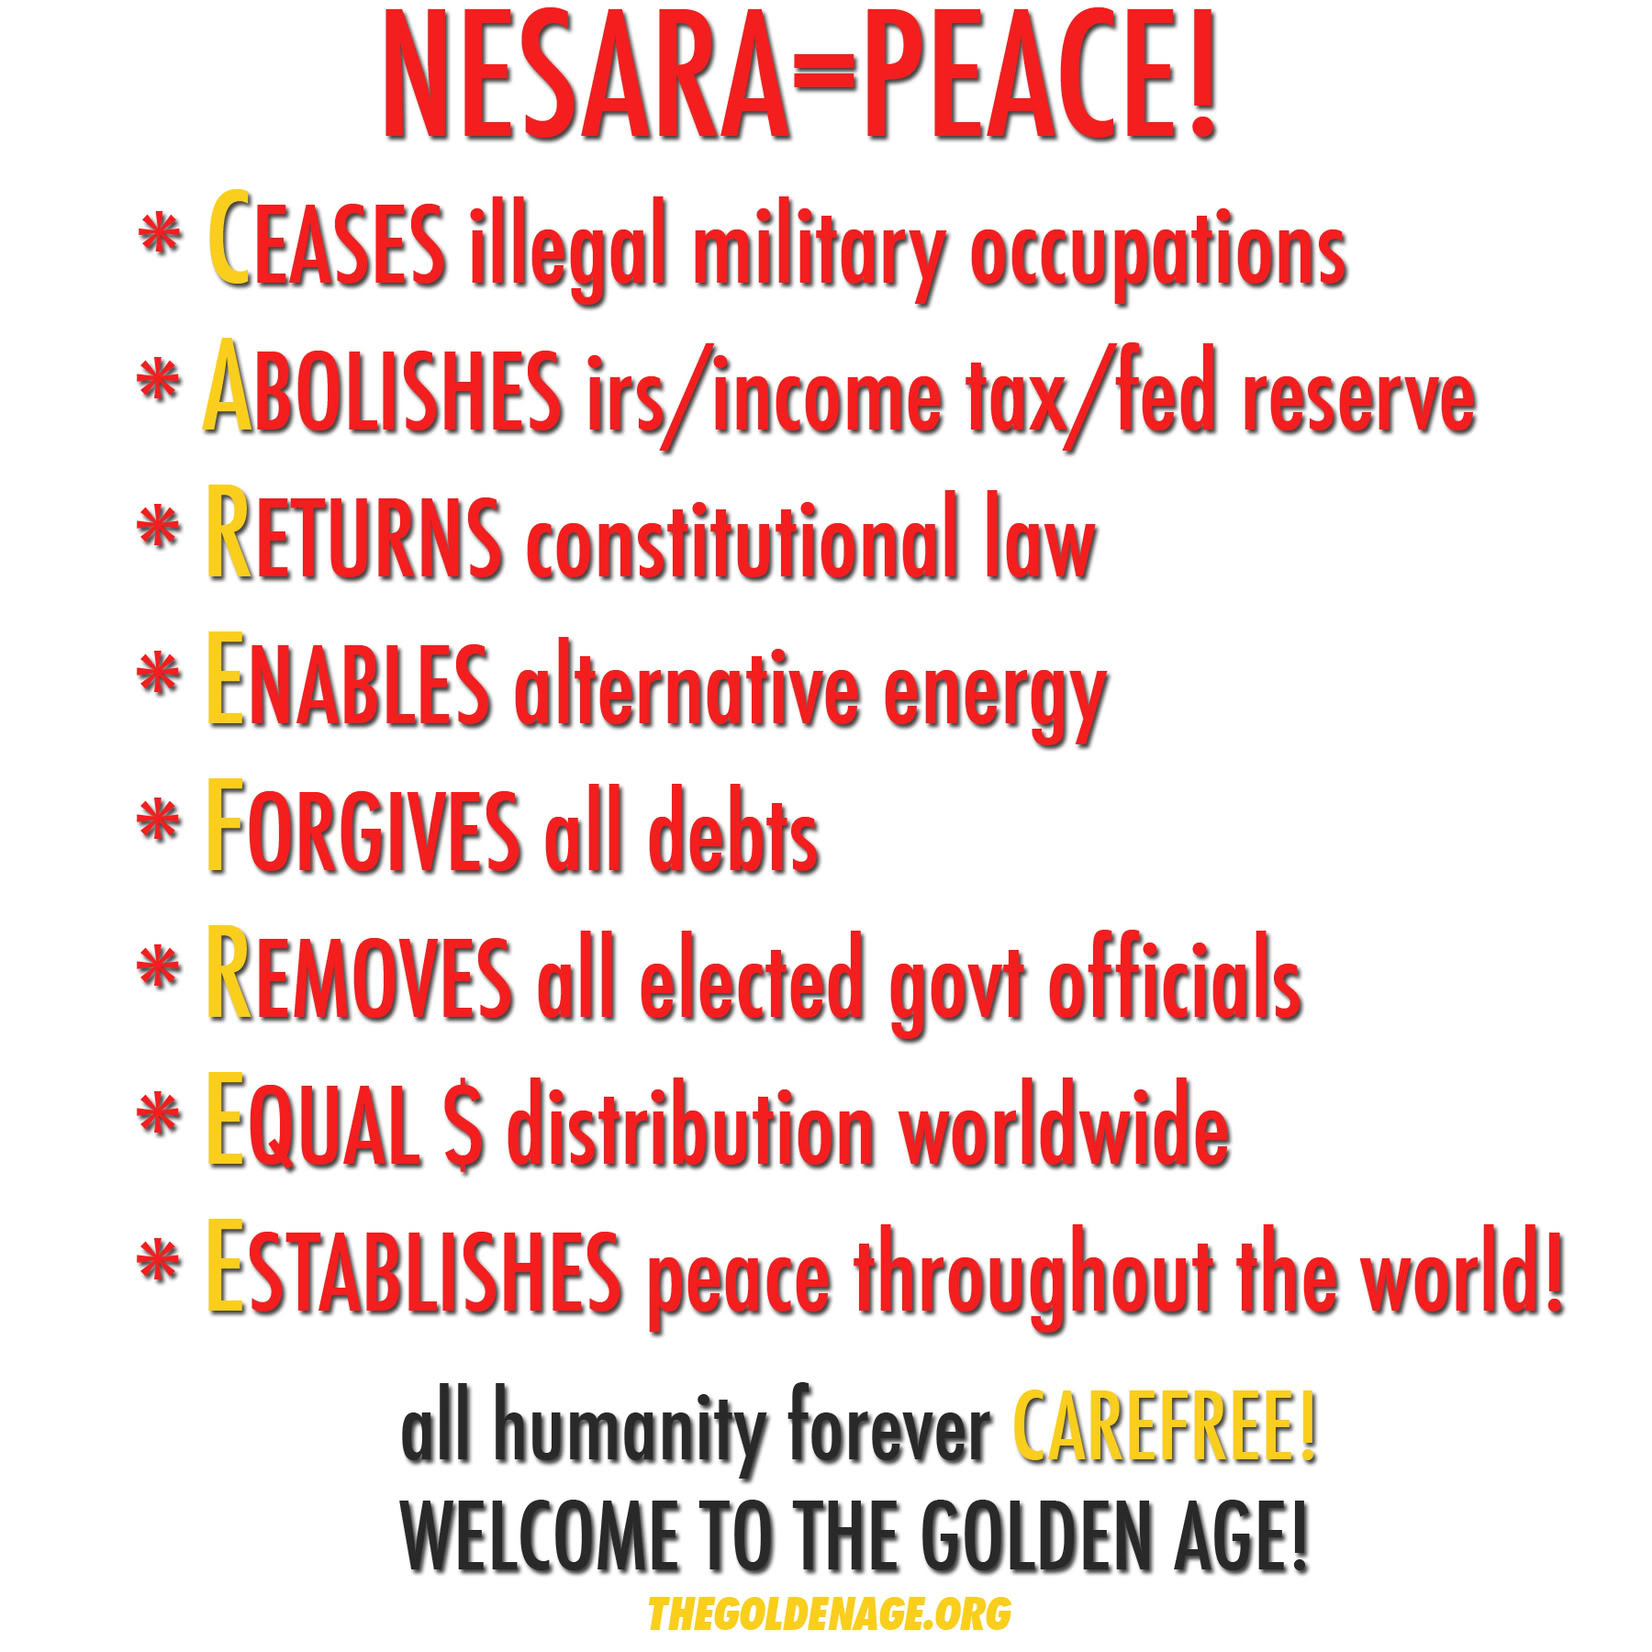 Some background re the delay for the announcement and enactment of the NESARA law here: